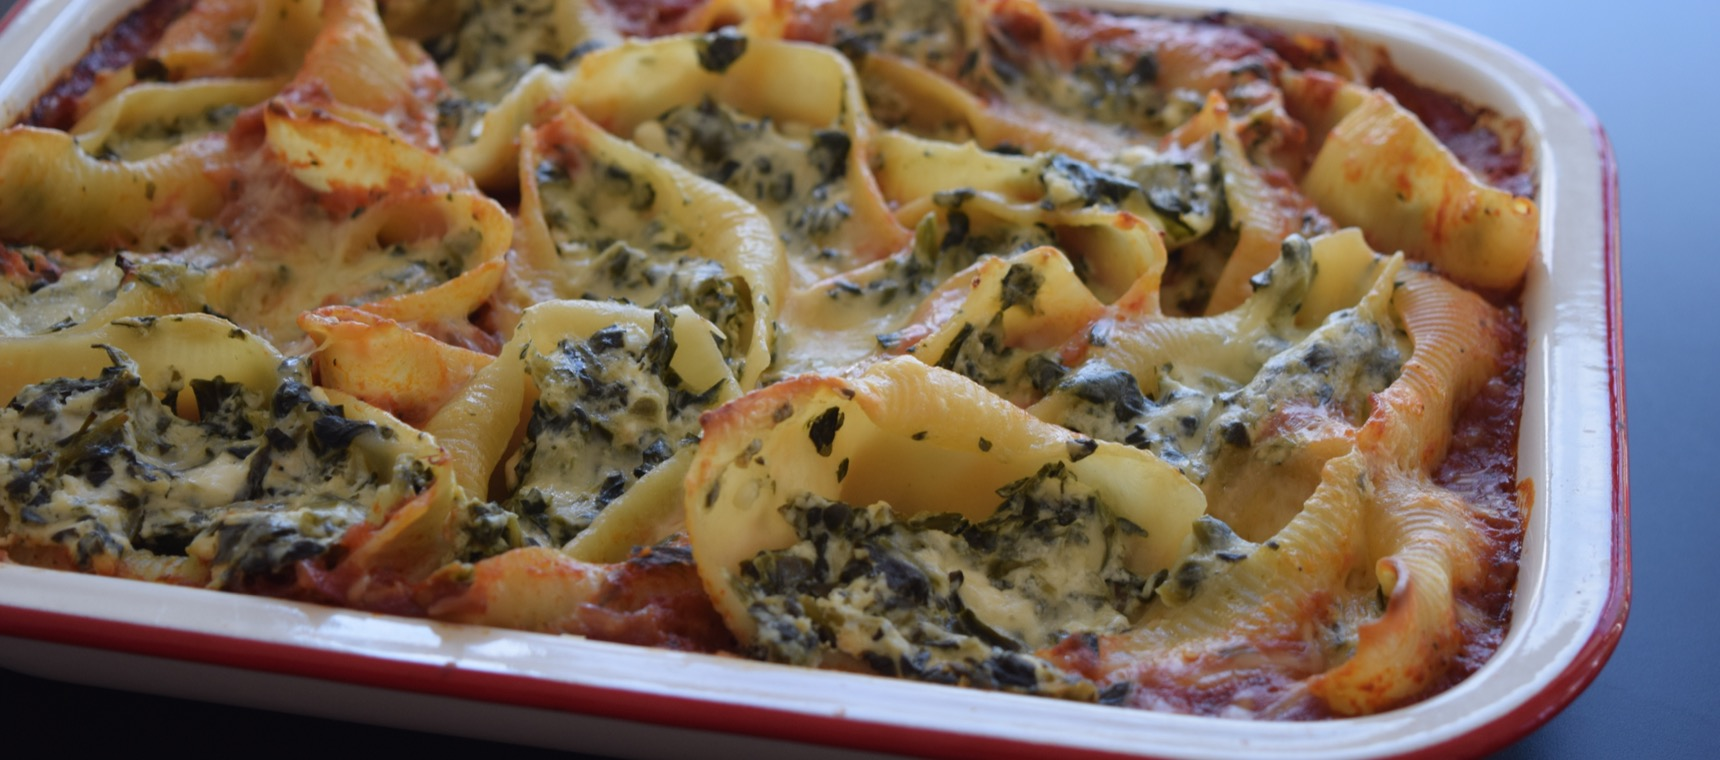 Spinach and Ricotta Pasta Shell Bake